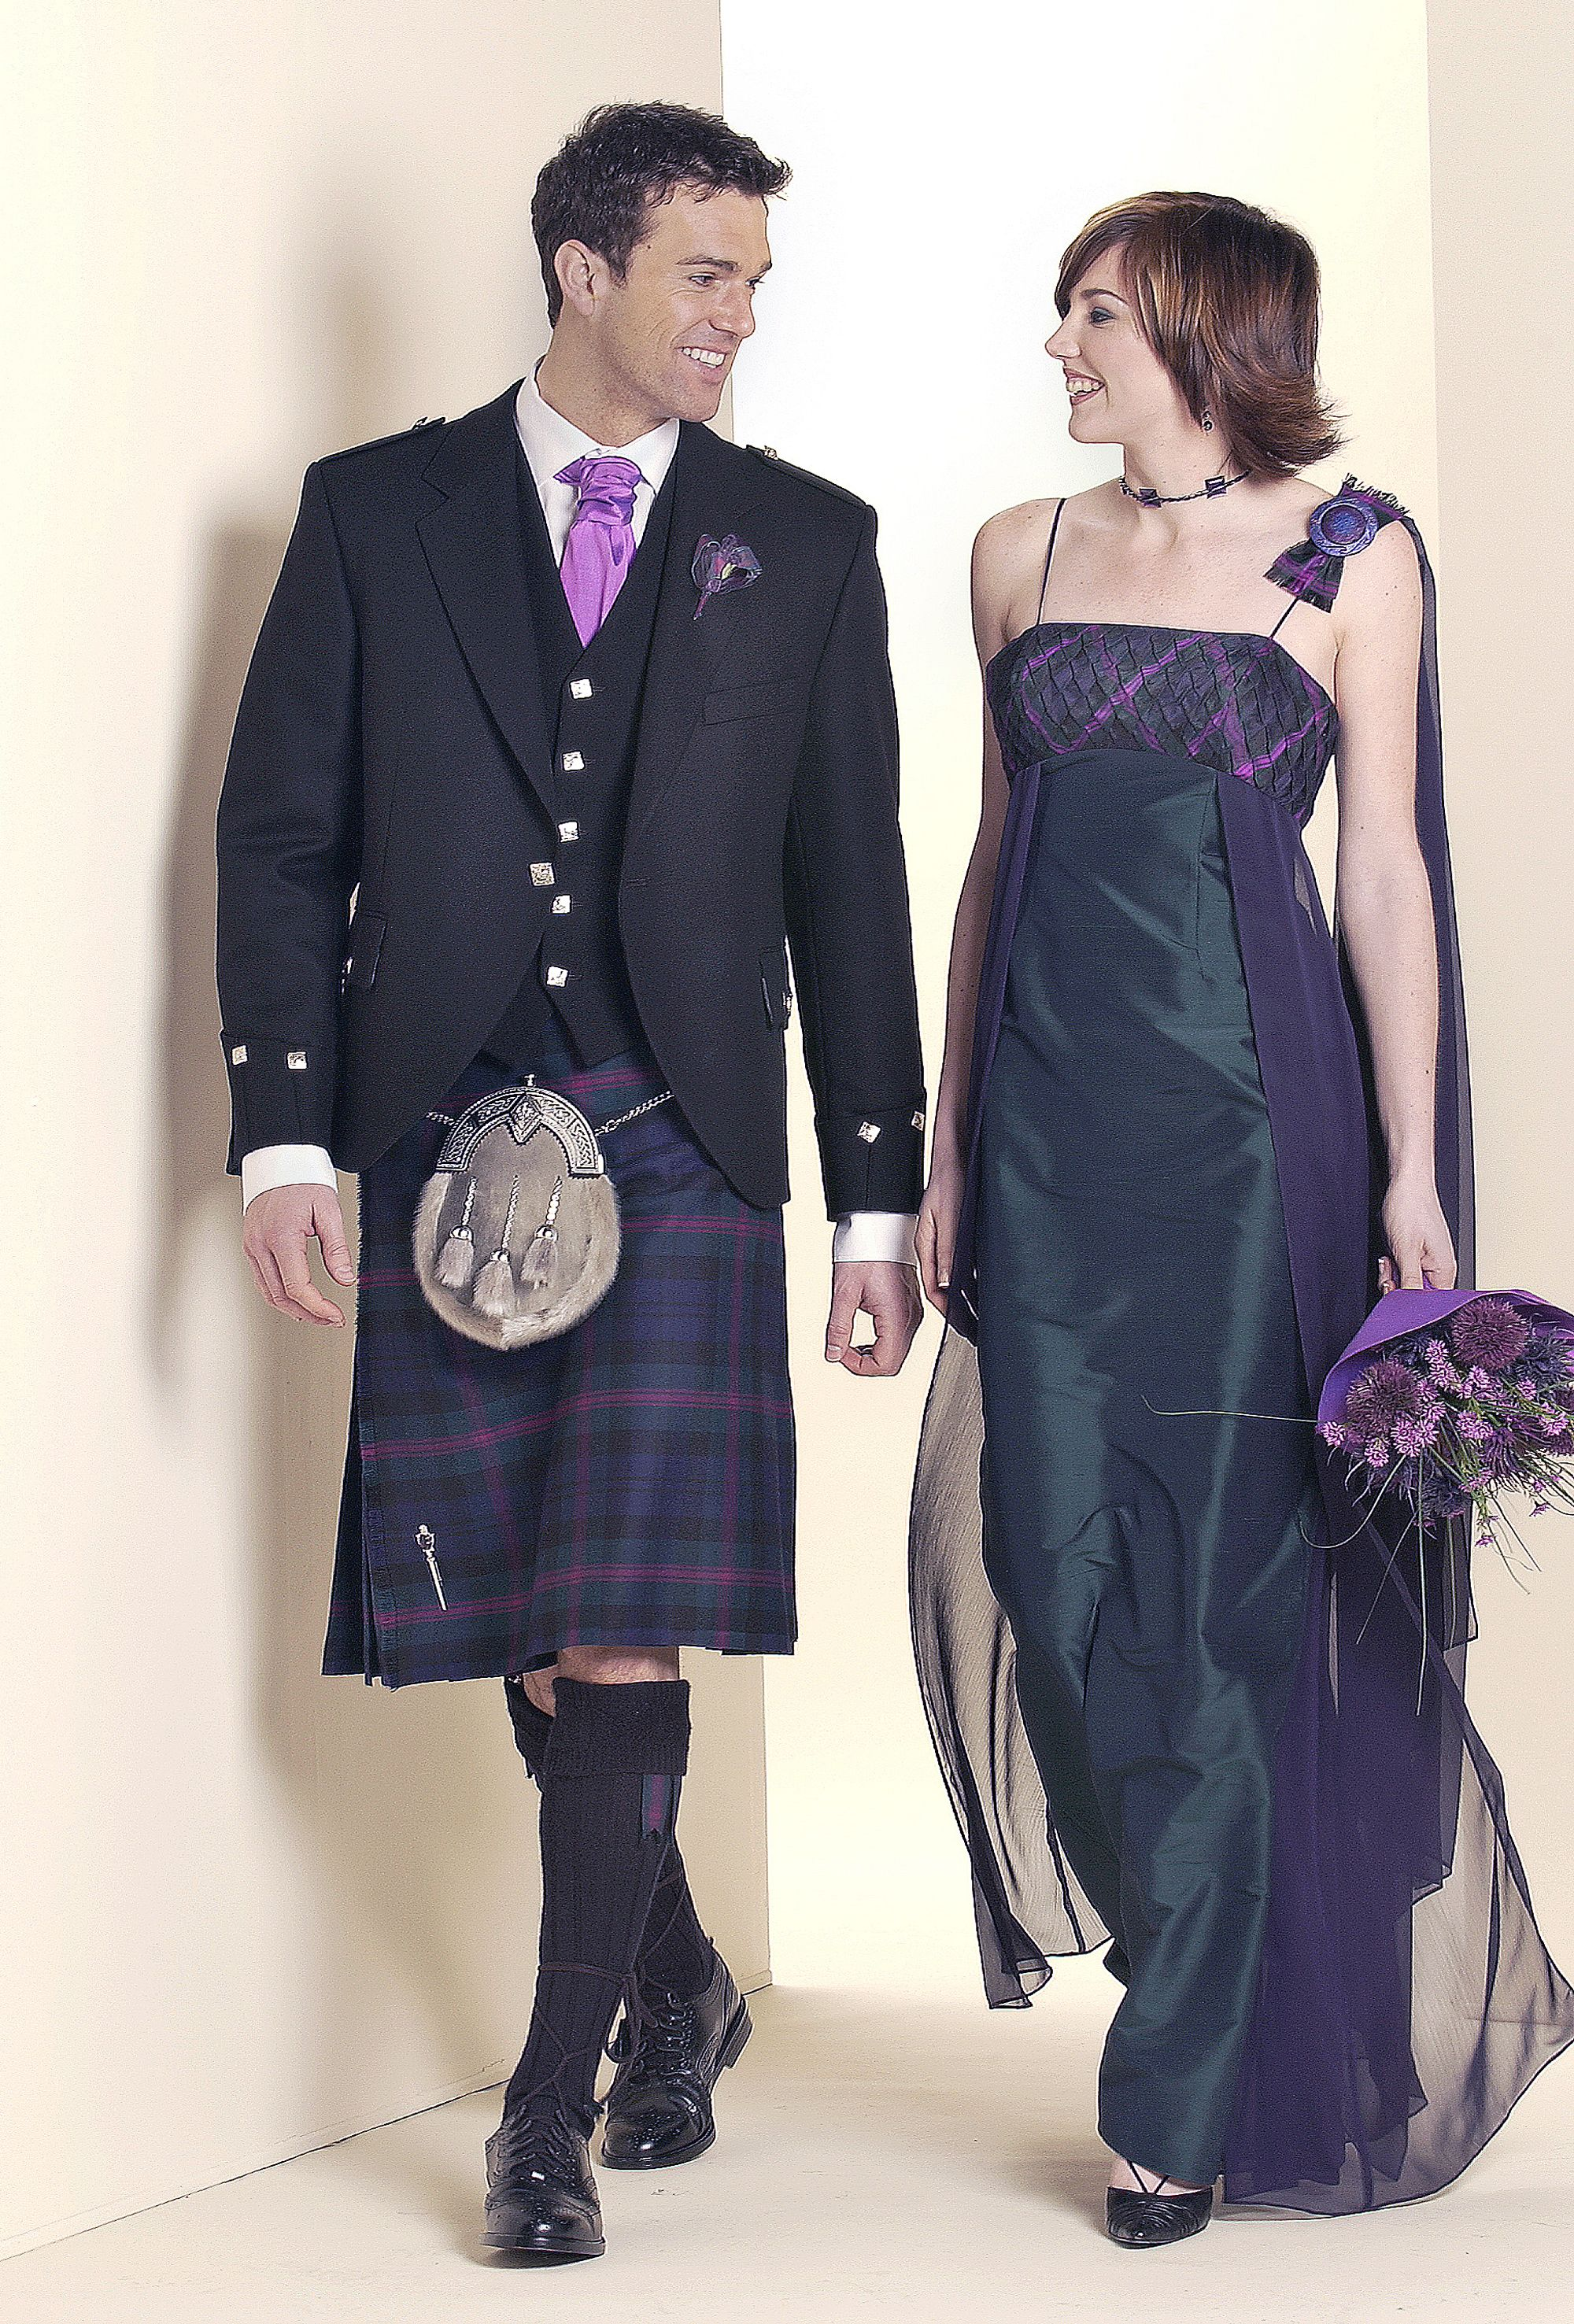 Darcie I Found The Whole Ensemble For You And Joey Scottish Wedding Dress So LMAO Right Now